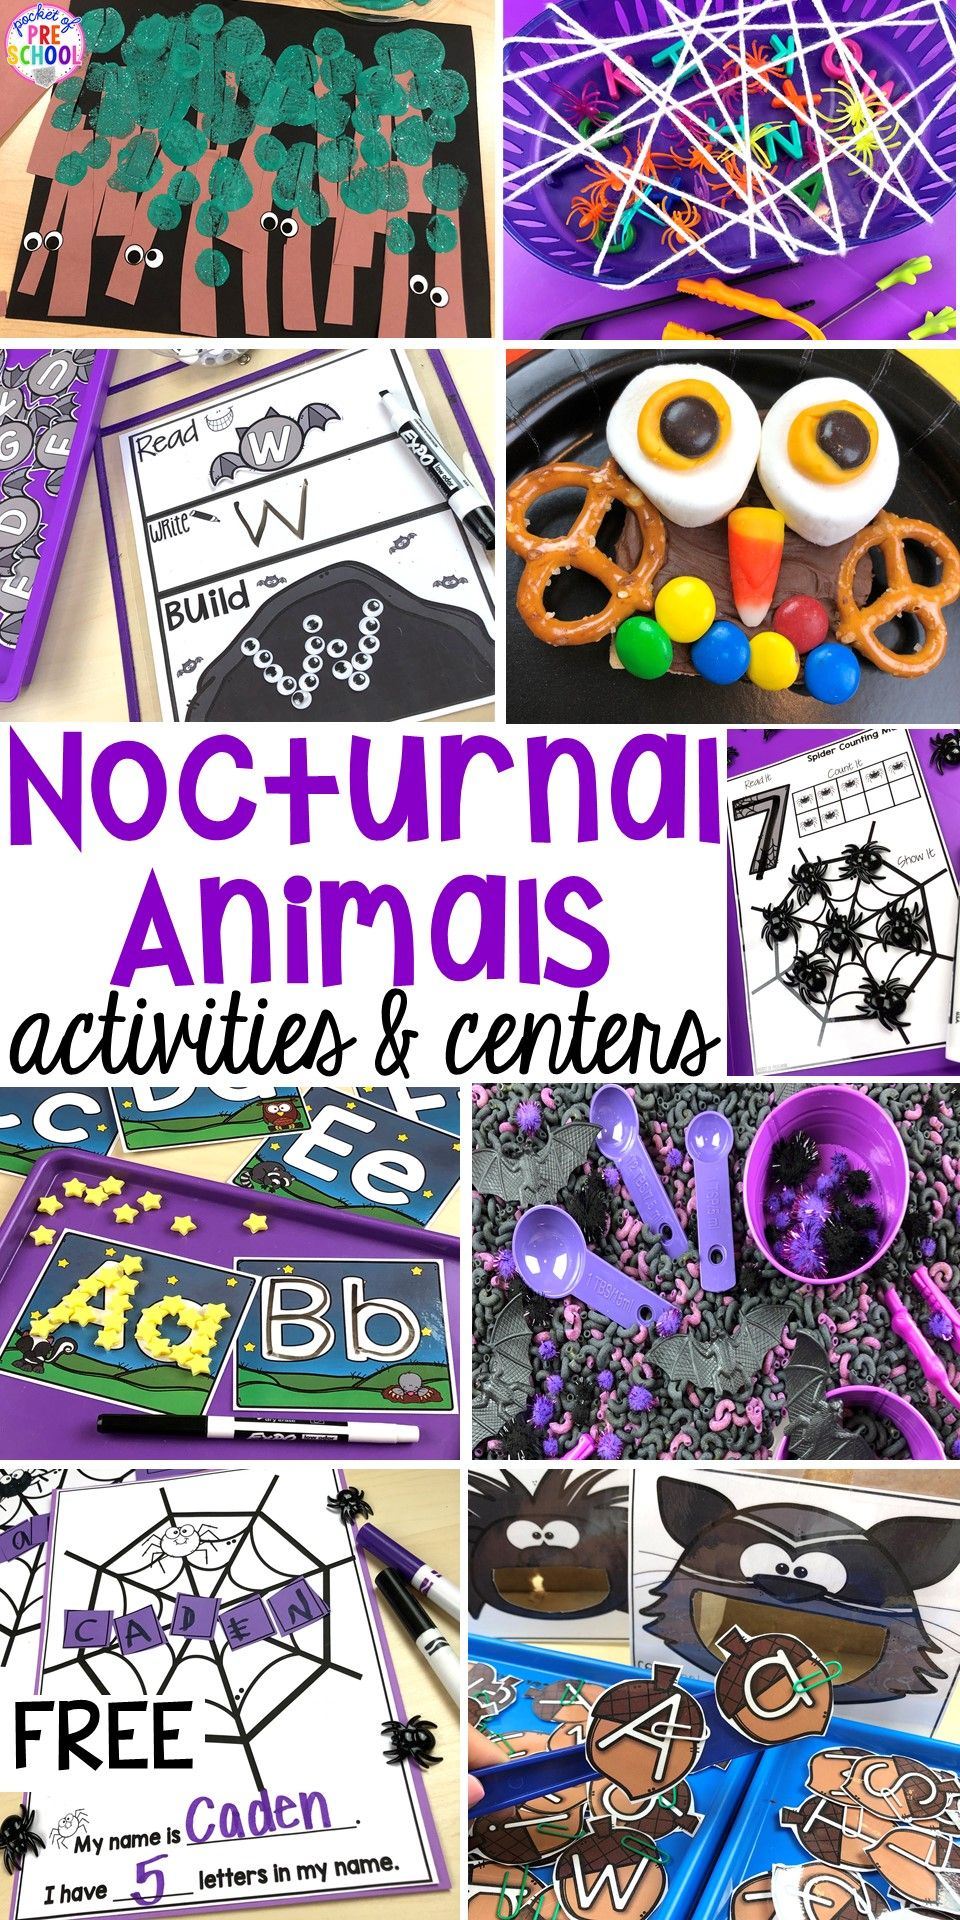 Nocturnal Animals Activities and Centers for Little